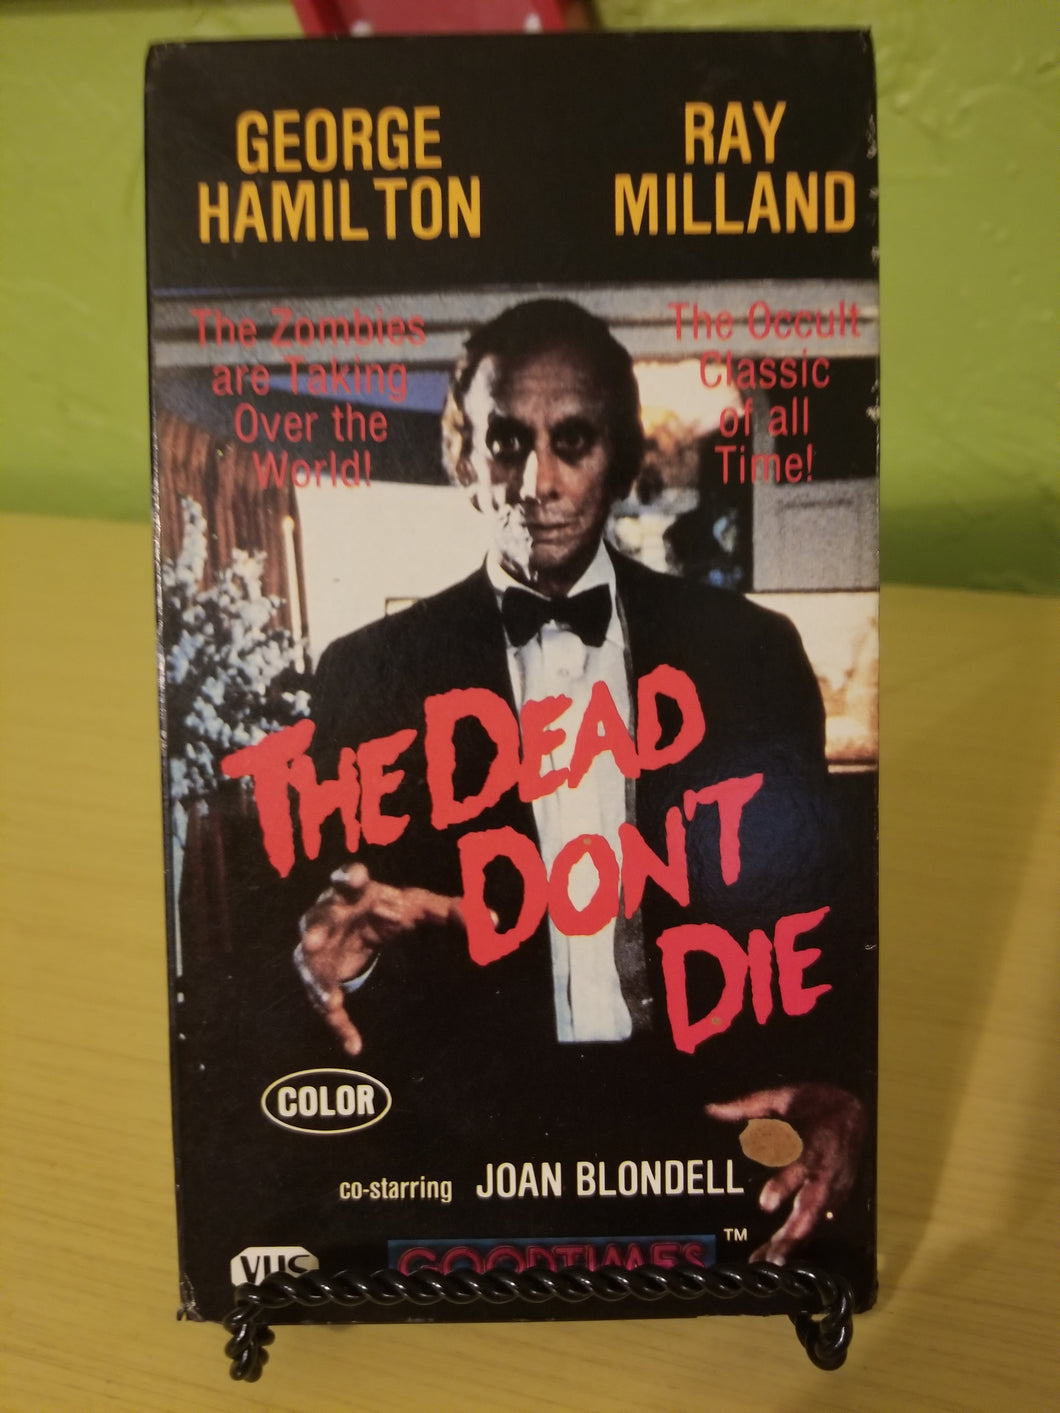 The Dead Don't Die VHS